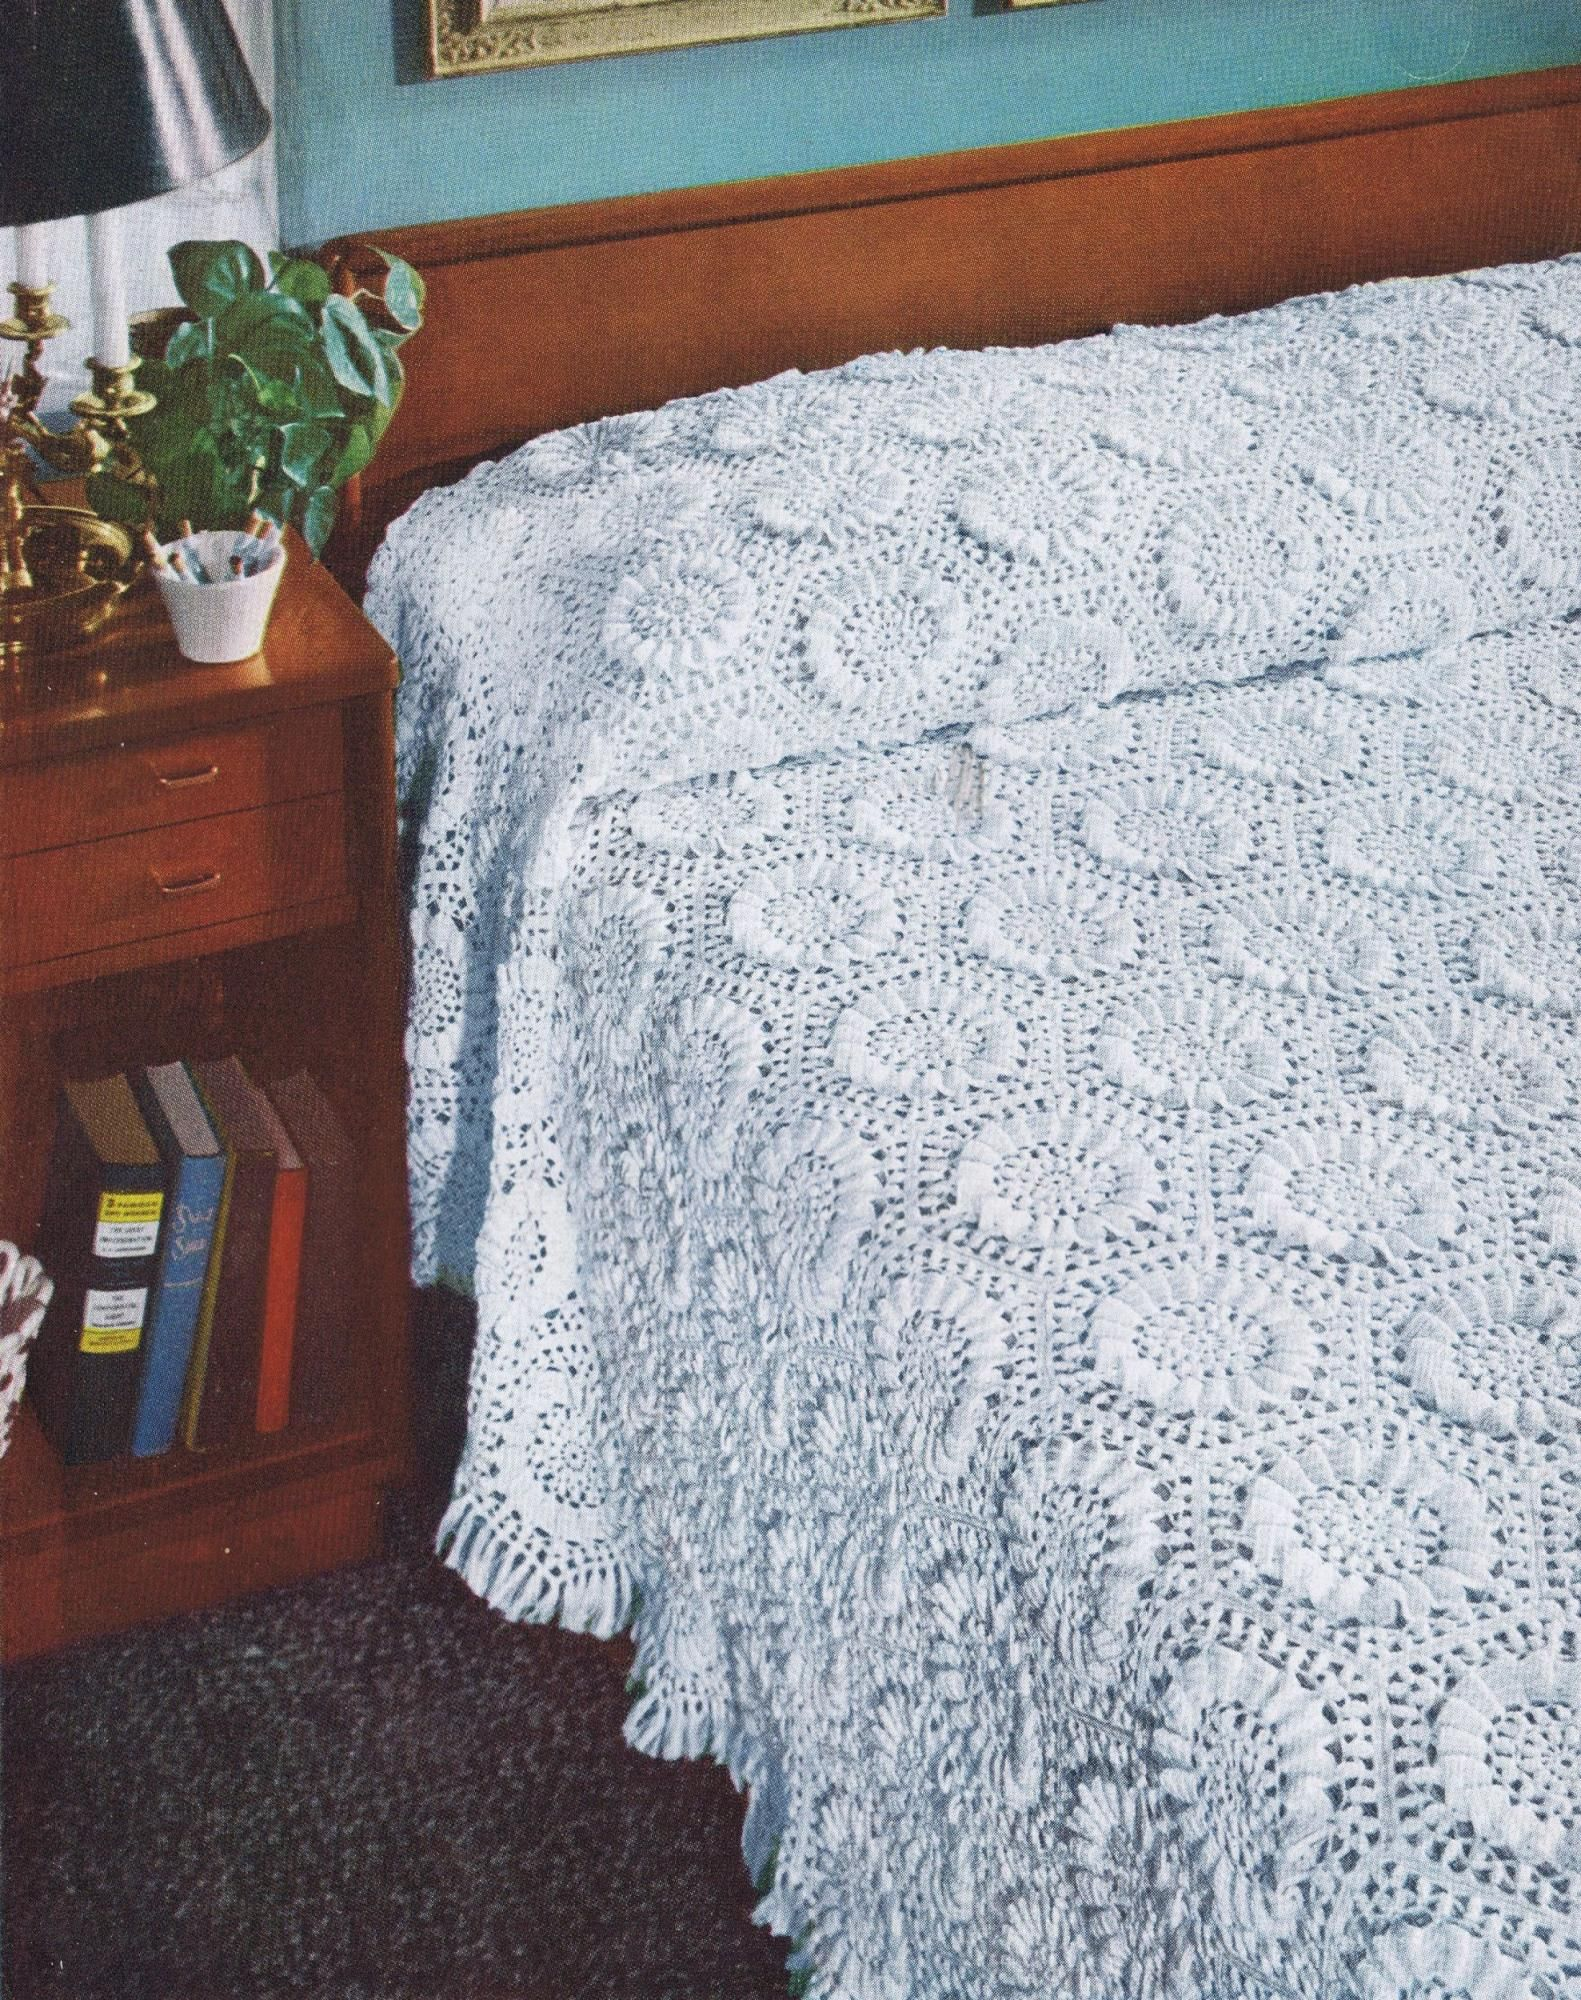 VINTAGE CROCHET KNITTING PATTERNS AMERICANA BEDSPREADS TABLECLOTHS - Images hosted at BiggerBids.com